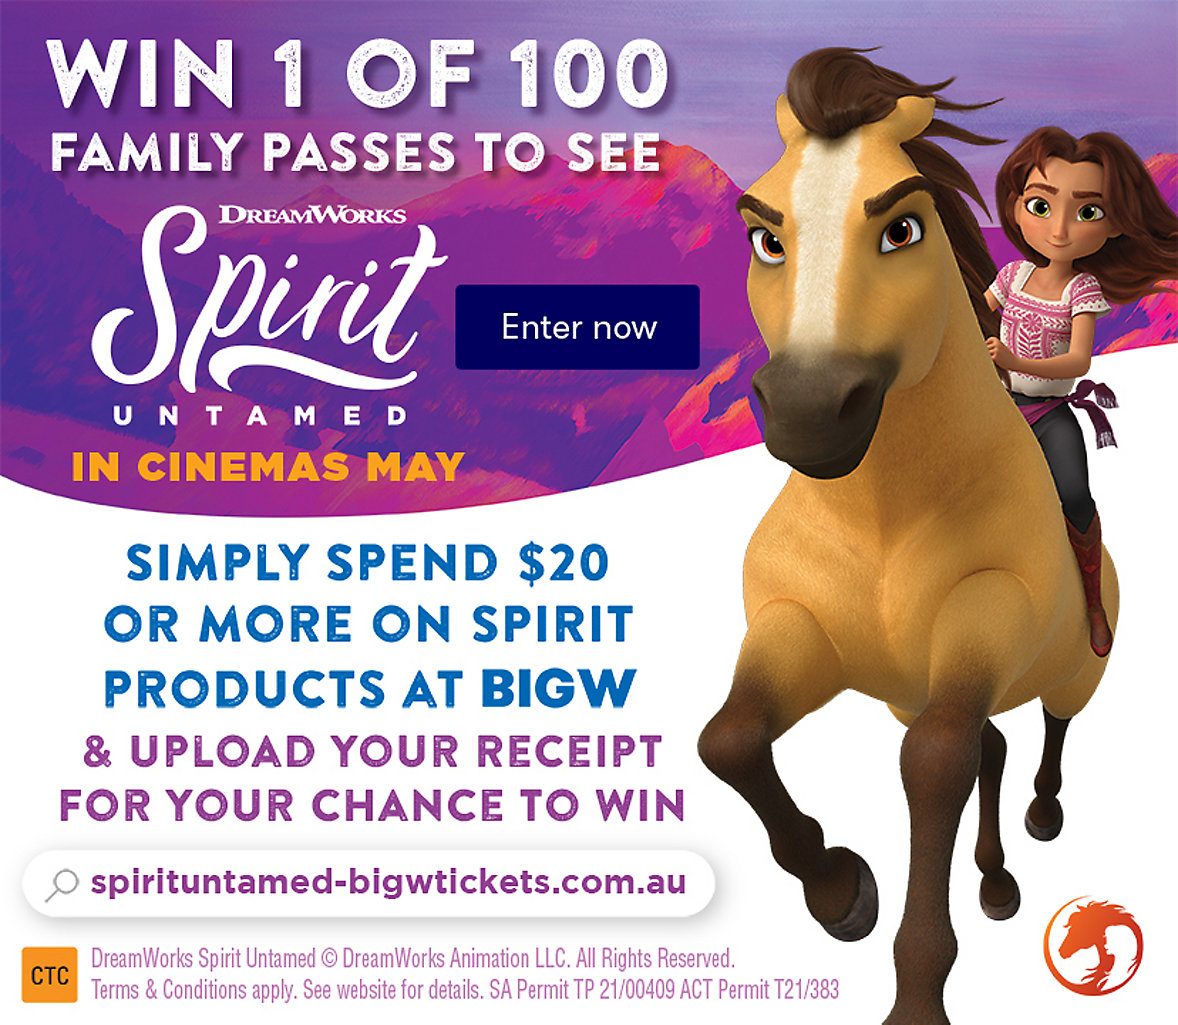 Spend $20 or more on Spirit products to Win 1 of 100 Family Passes to see Spirit Untamed